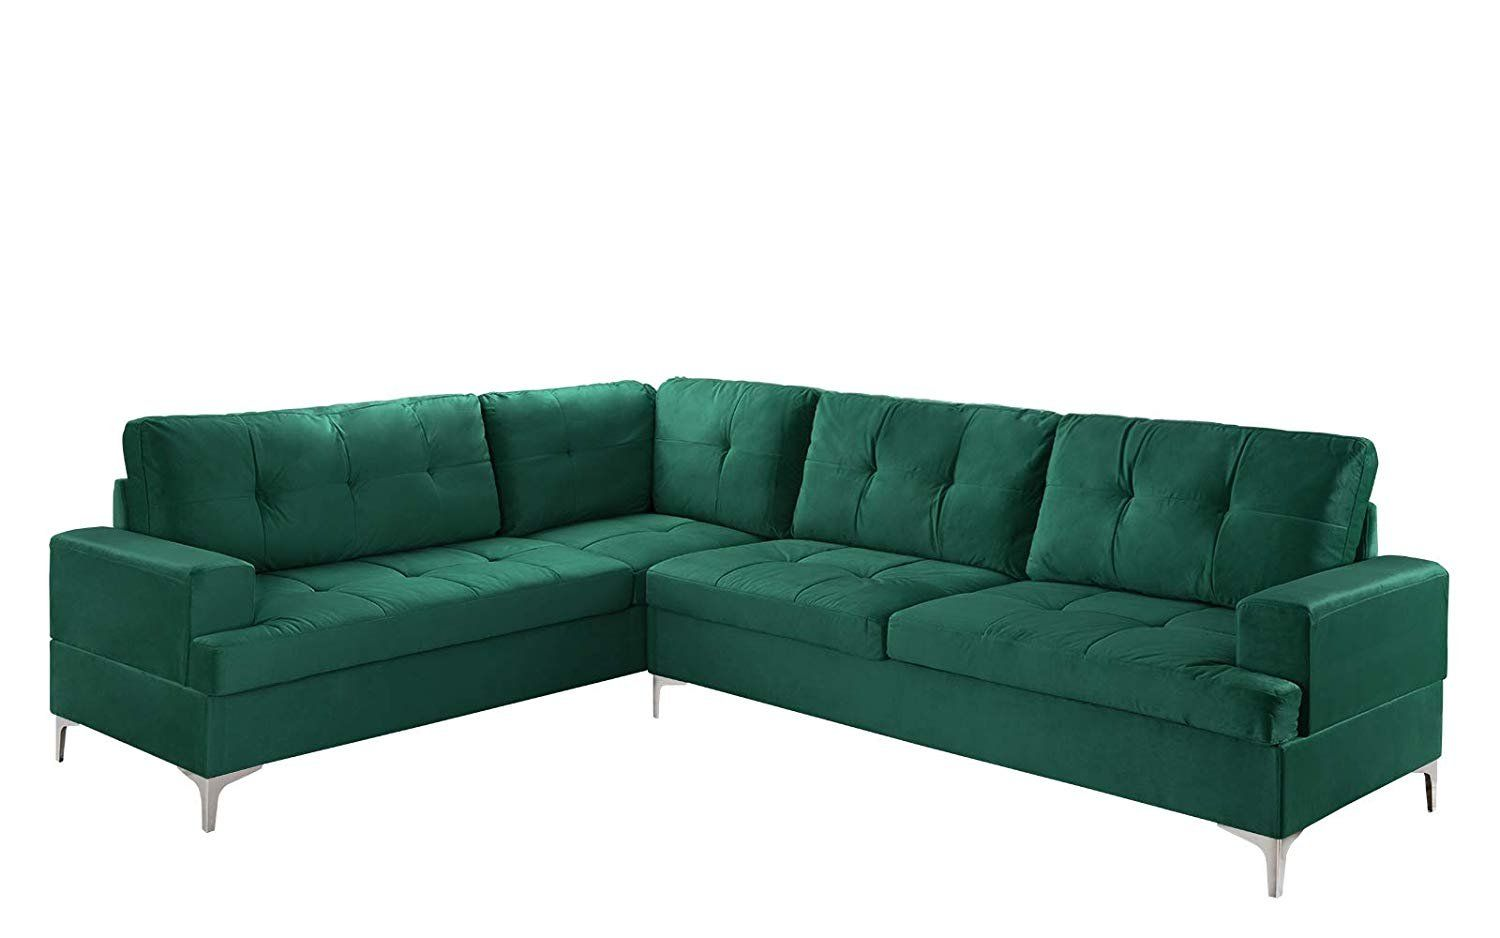 L Shaped Couch Sectional Sofa Living